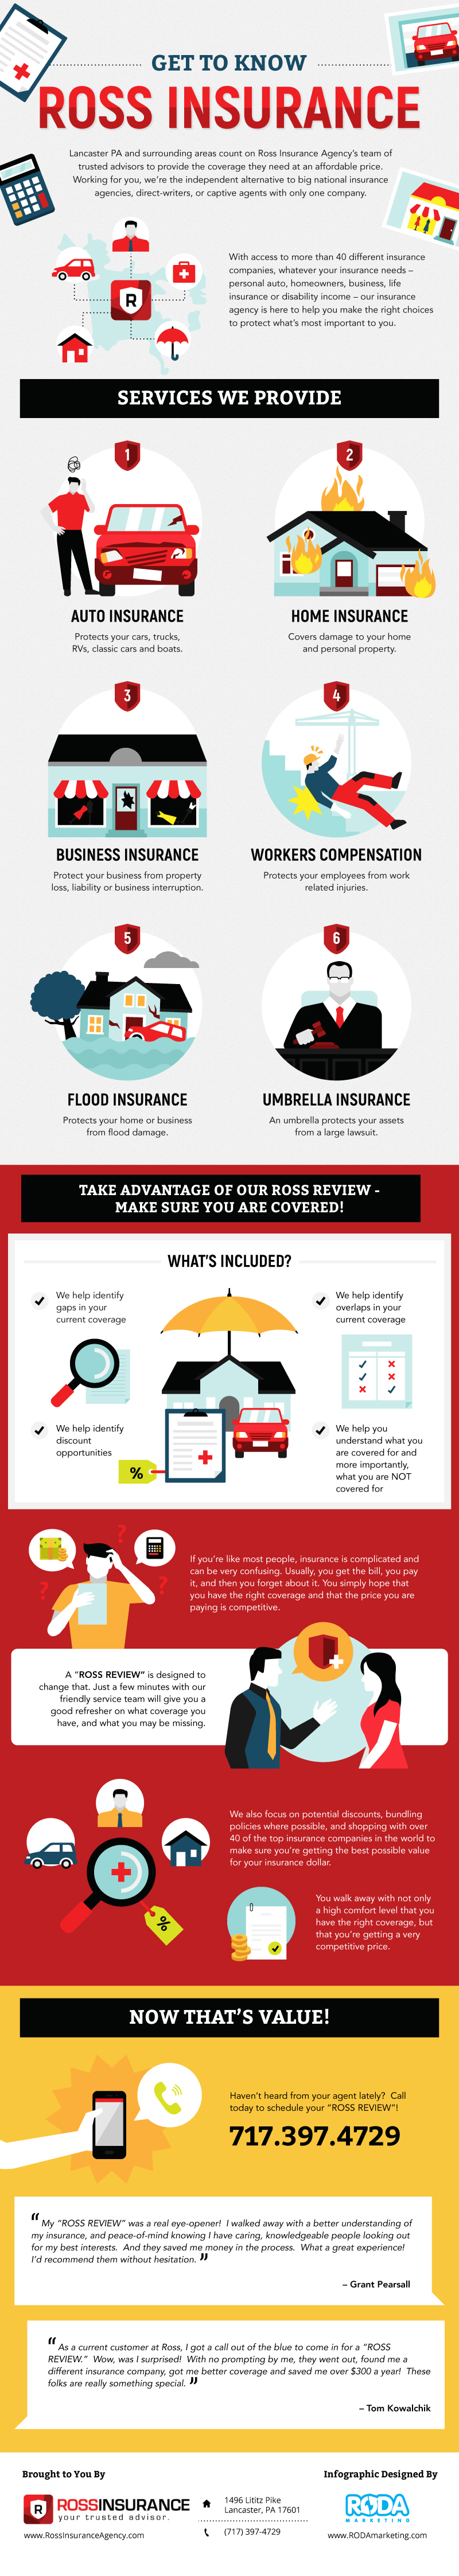 Get To Know ROSS Insurance_July 2017